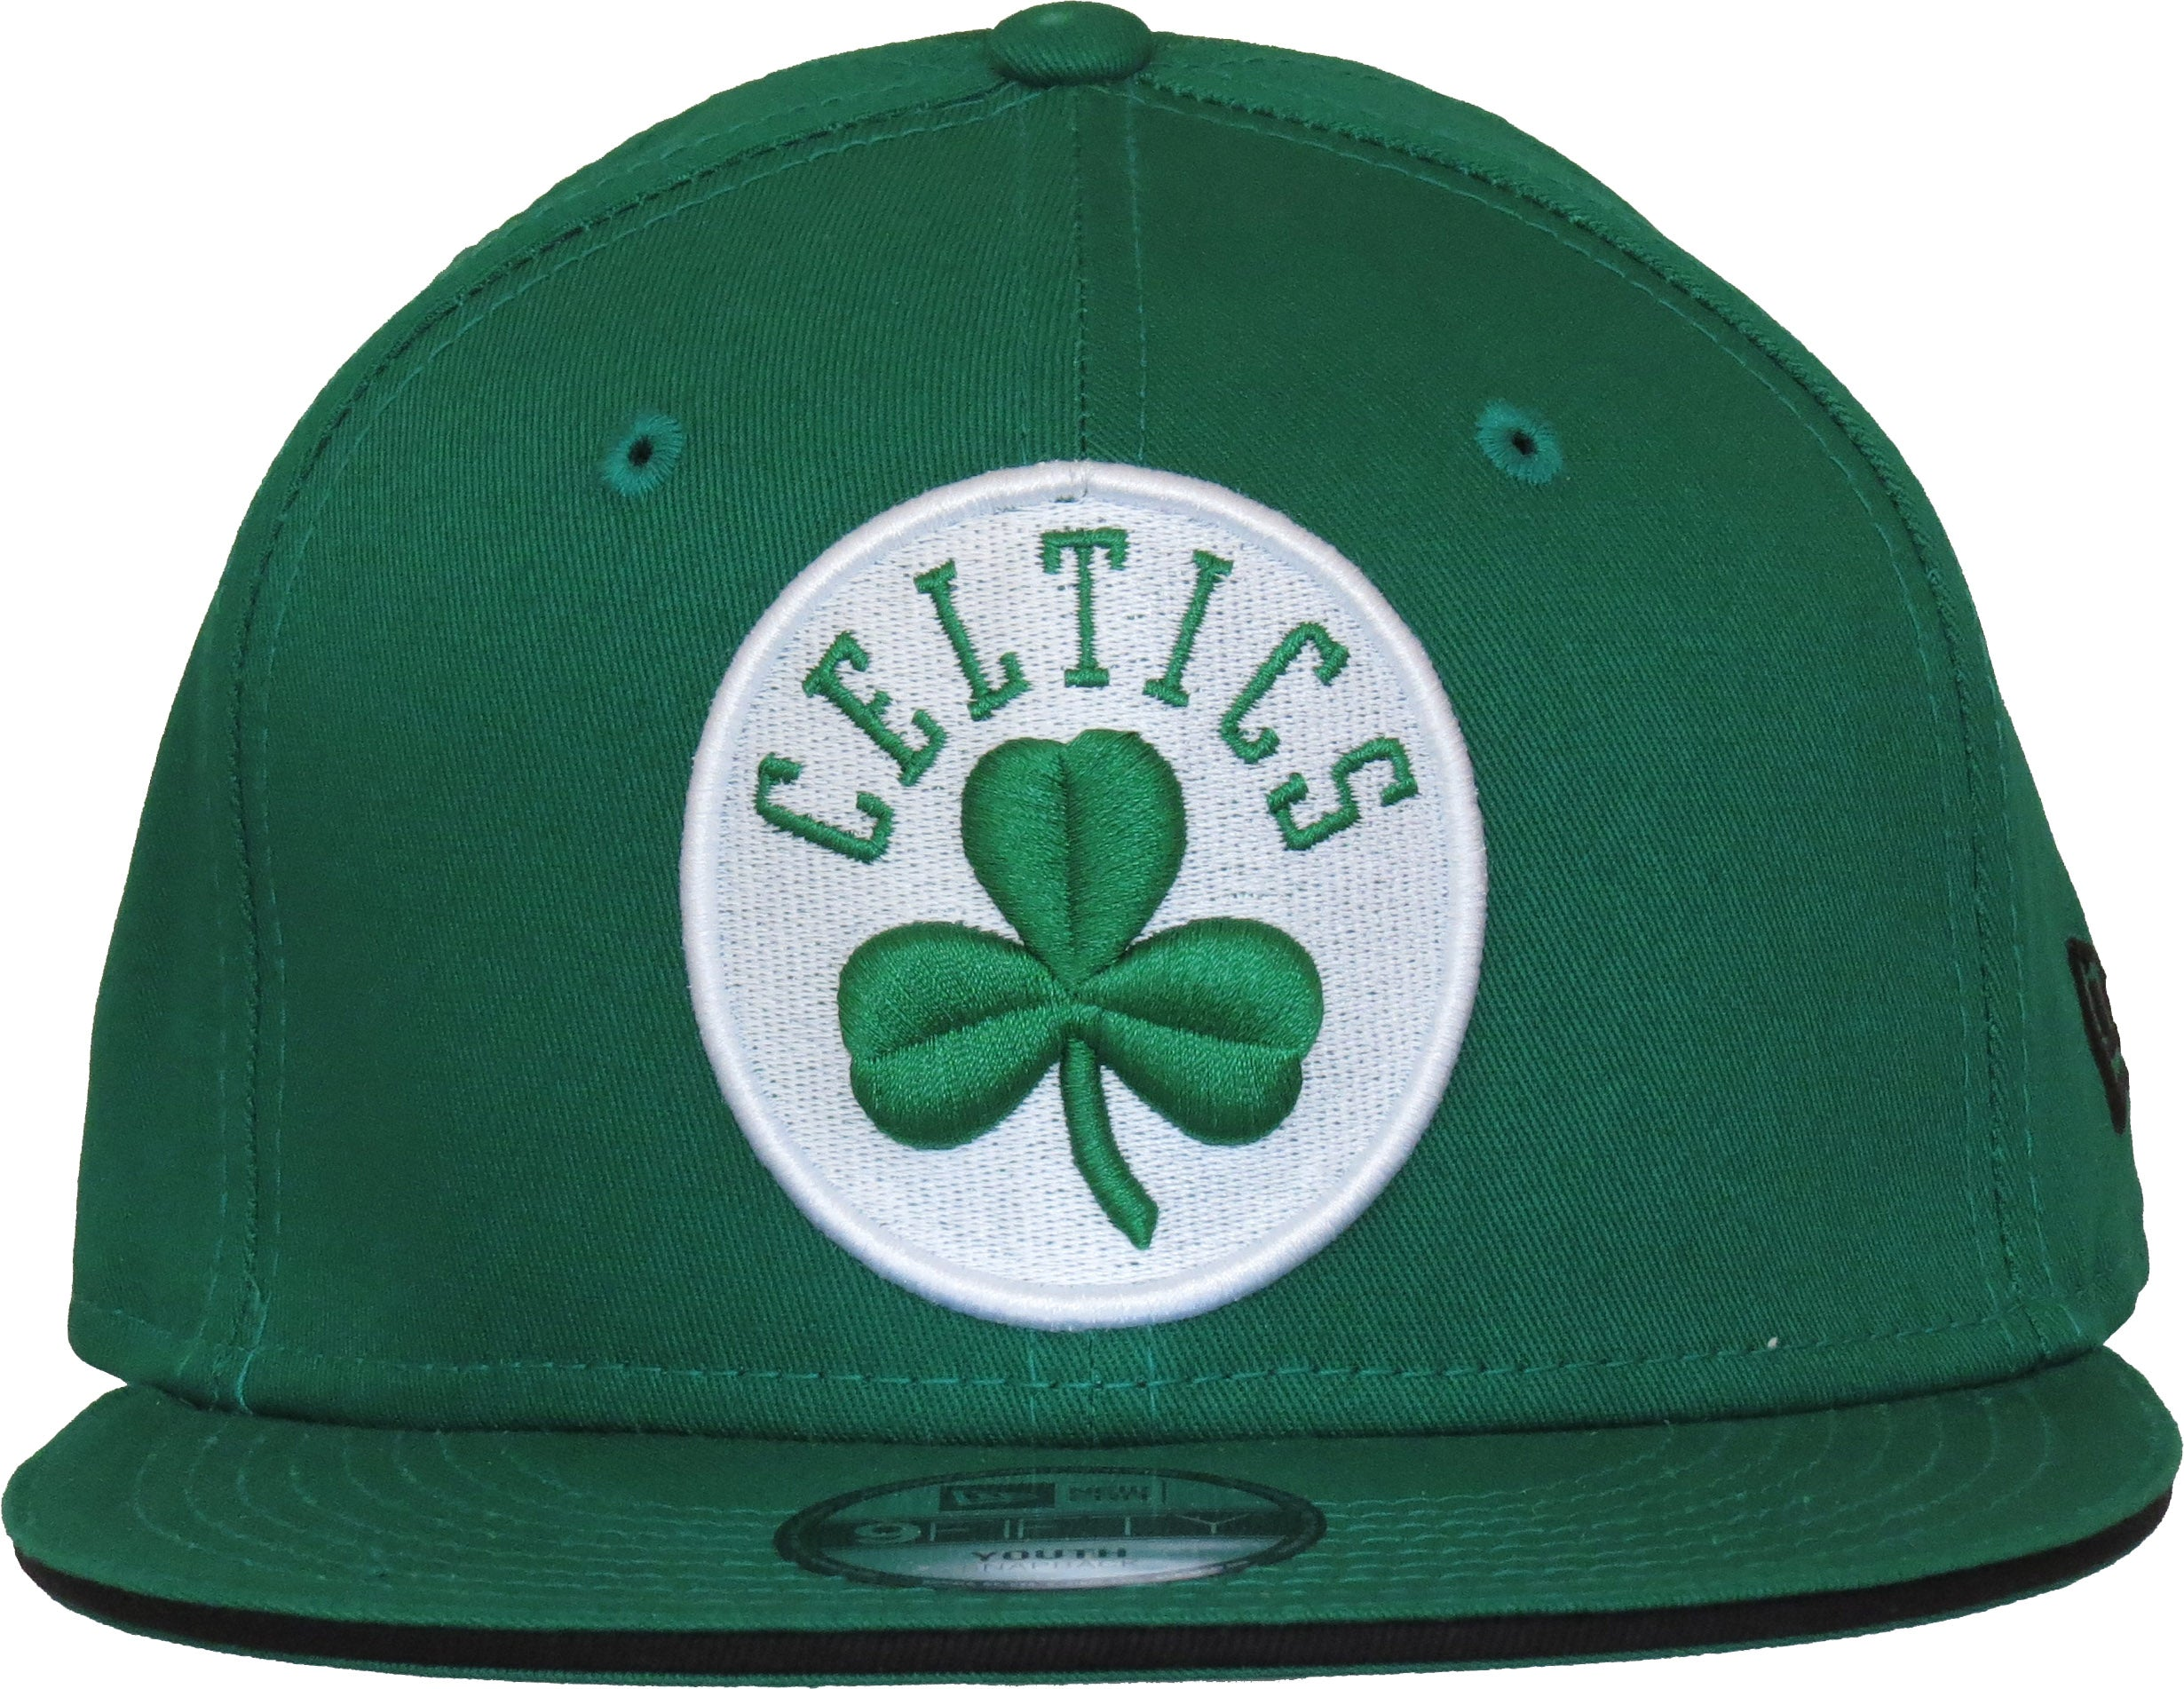 d75eb72a83e ... netherlands boston celtics new era 950 kids classic tm snapback cap age  5 10 years 8218b